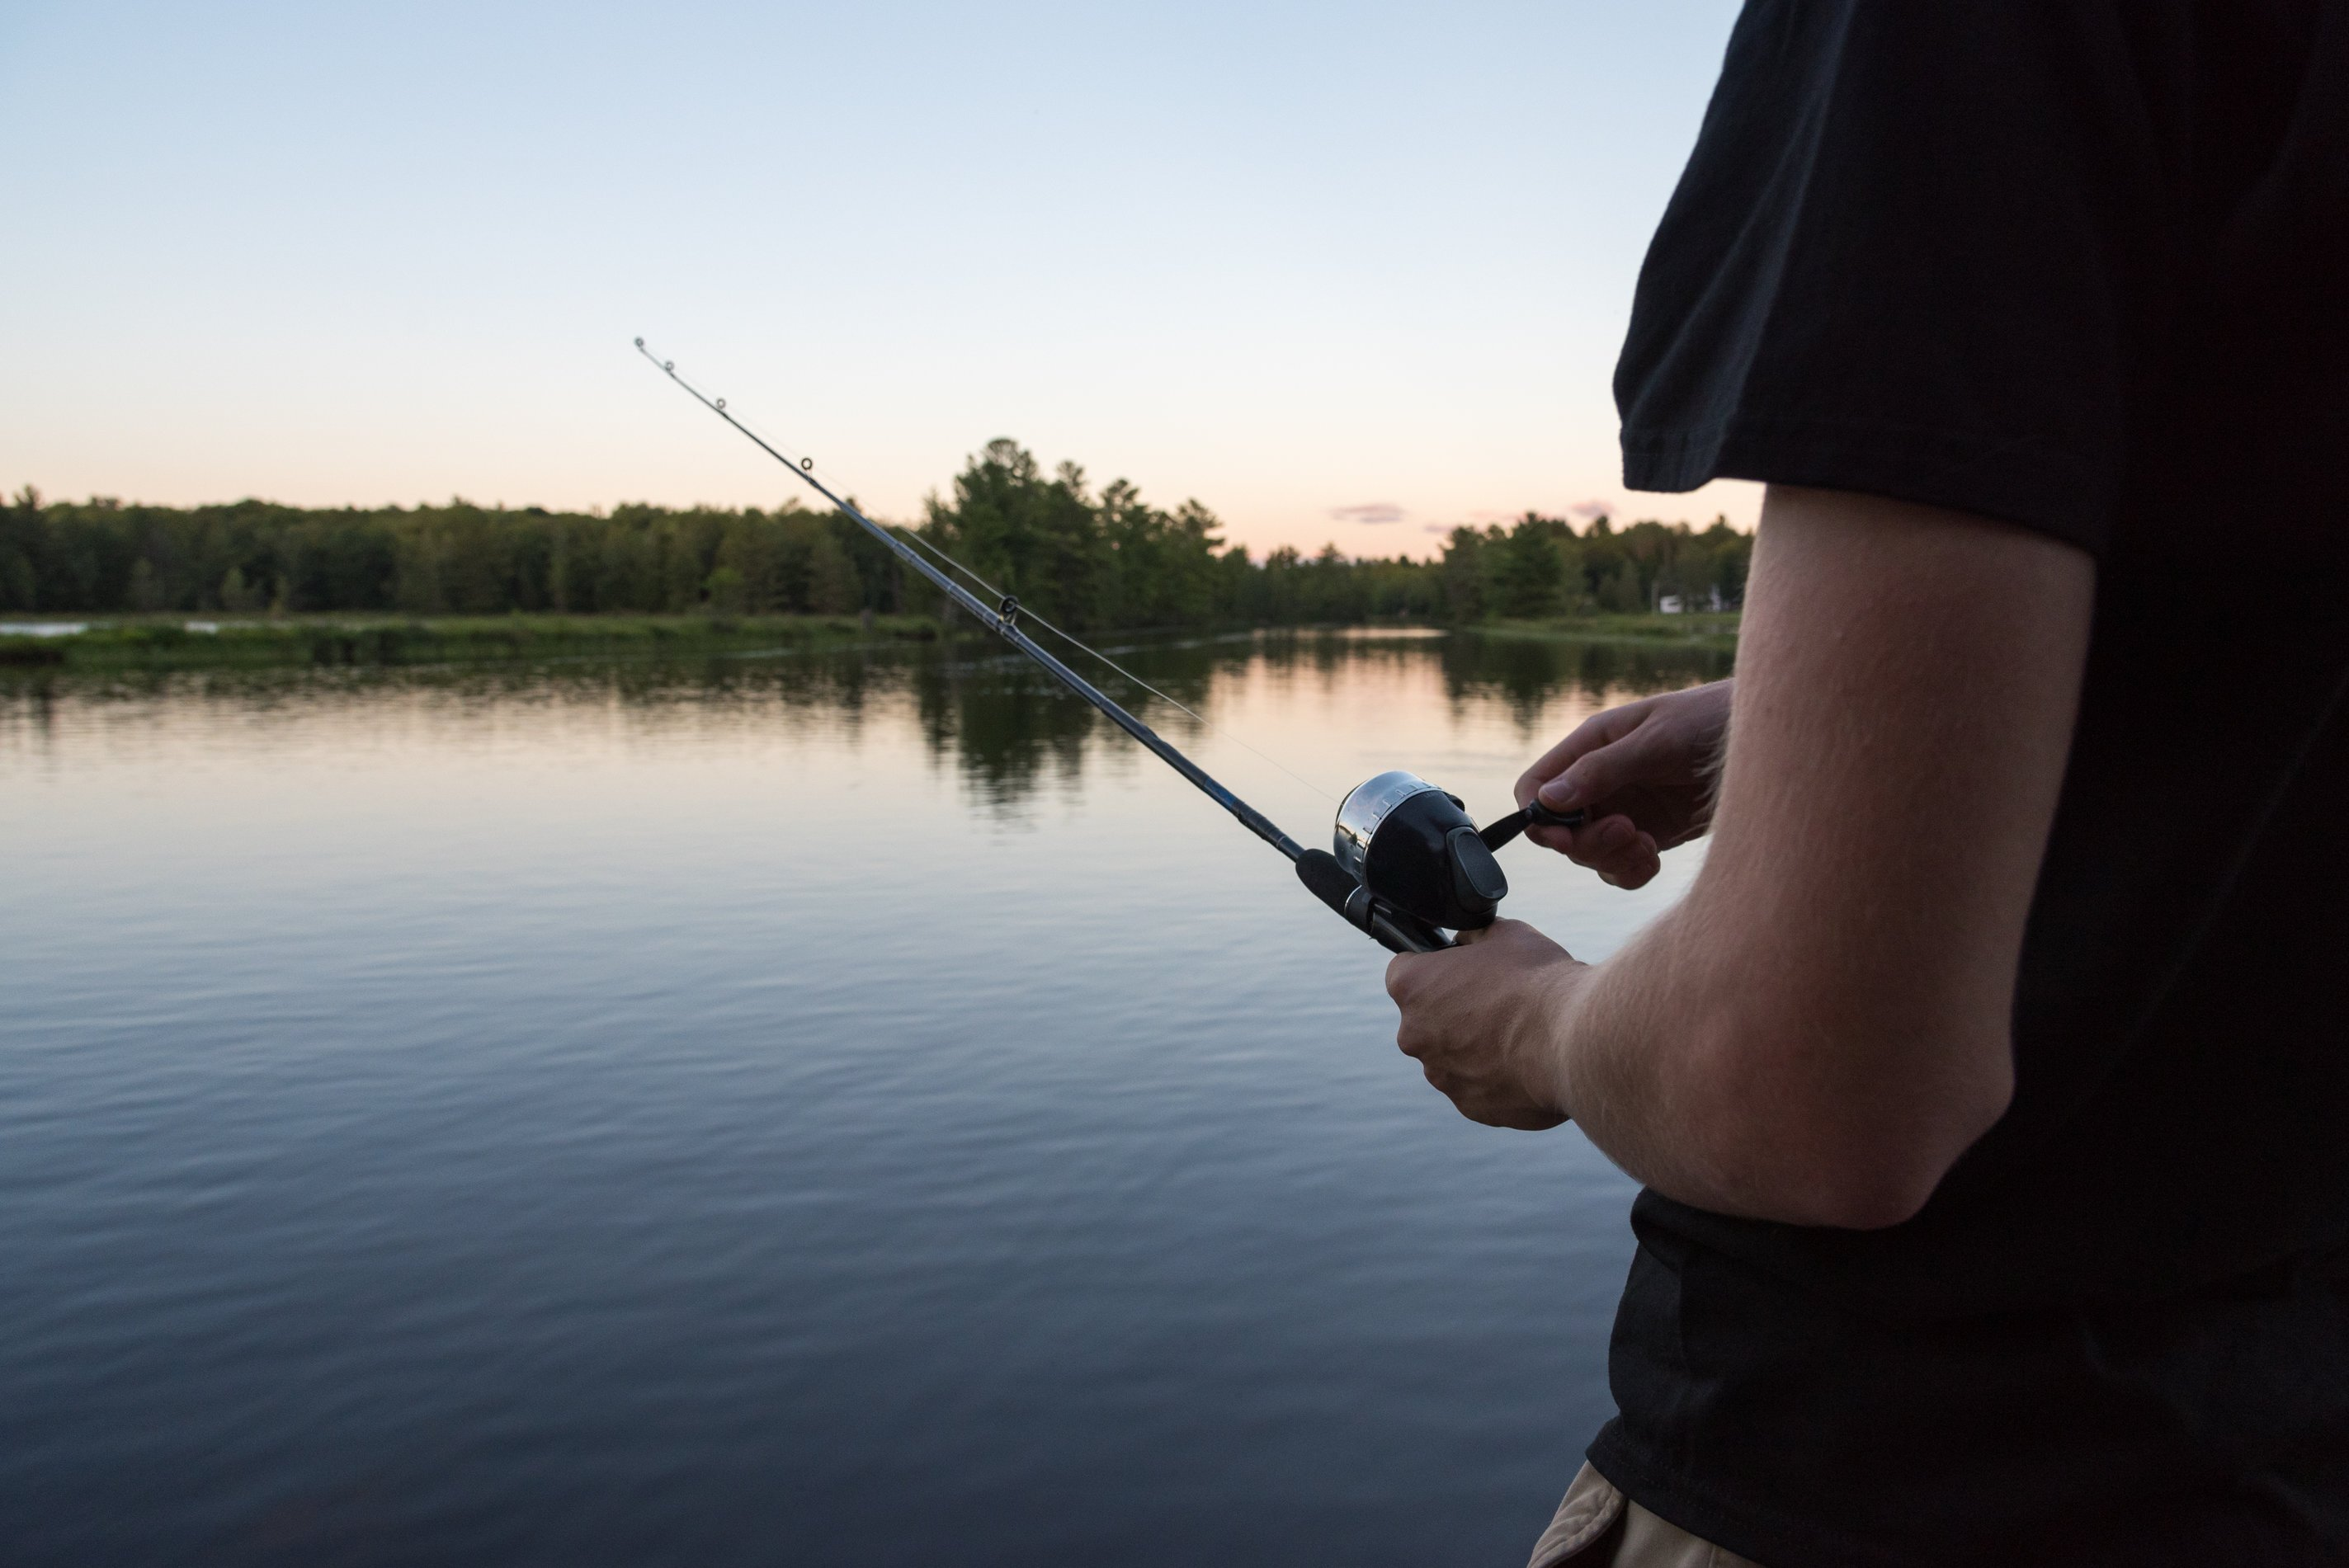 an angler holding a rod with his hand on the spincast fishing reel, and a river in the background